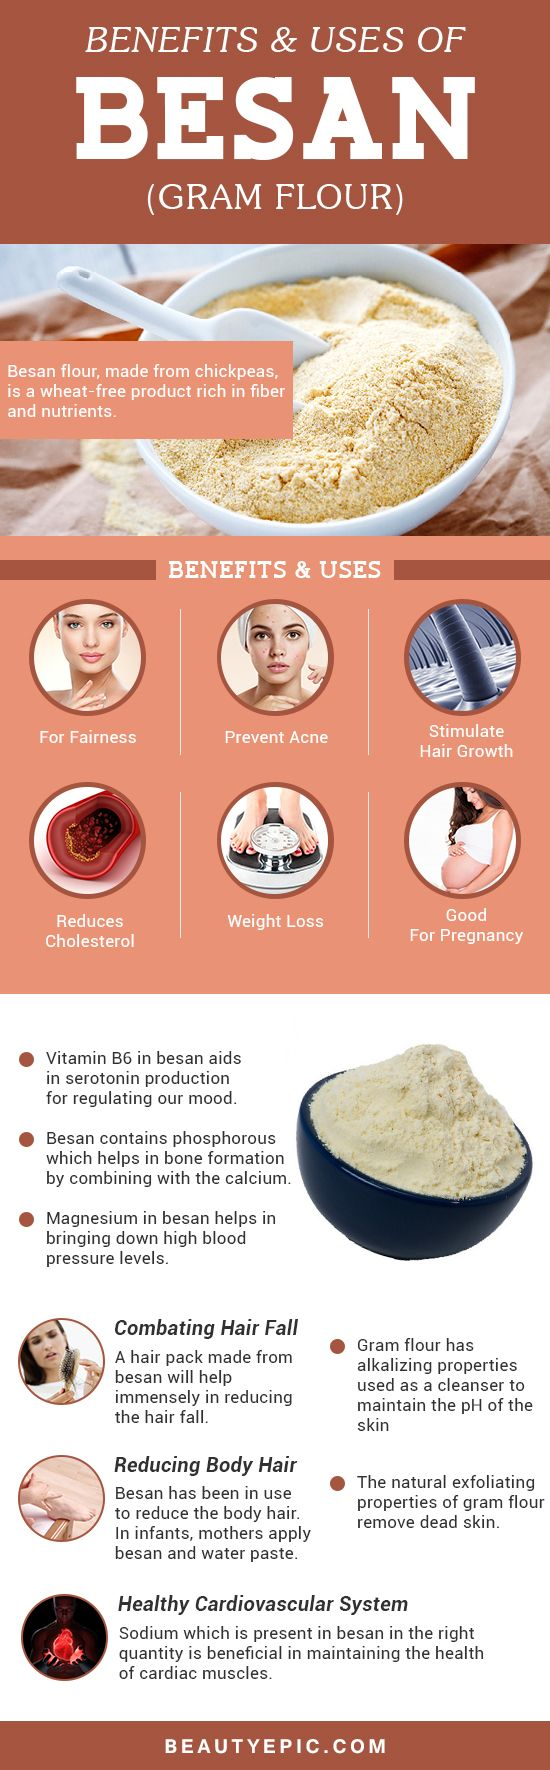 9 Amazing Benefits and Uses of Besan (Gram Flour)  Healthy skin